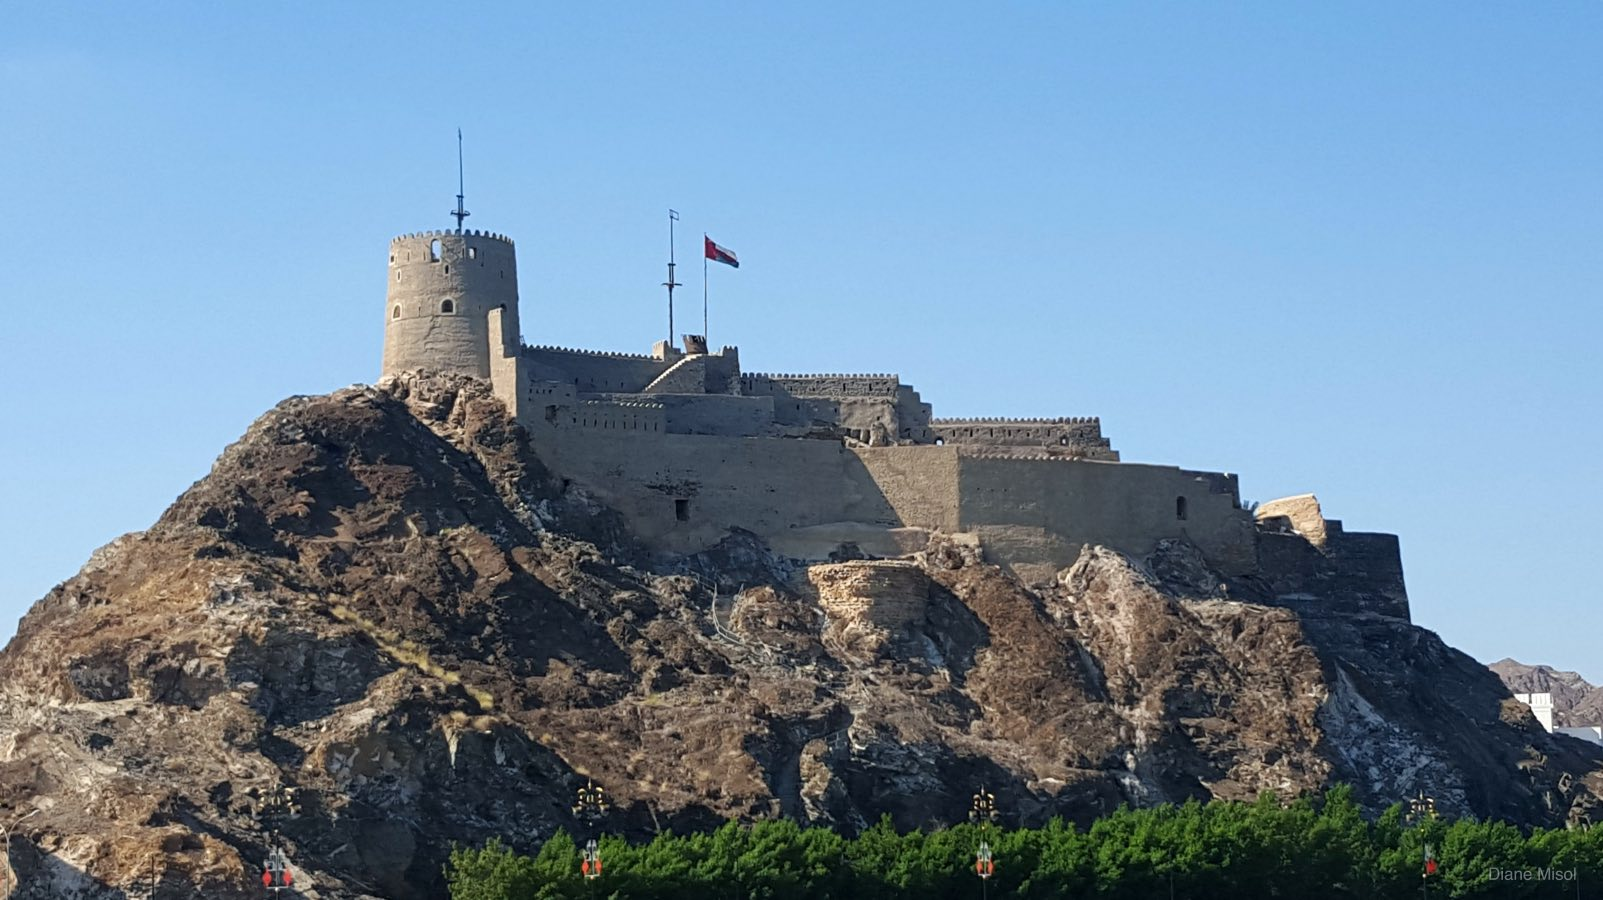 One of many Forts and Castles, Muscat, Oman